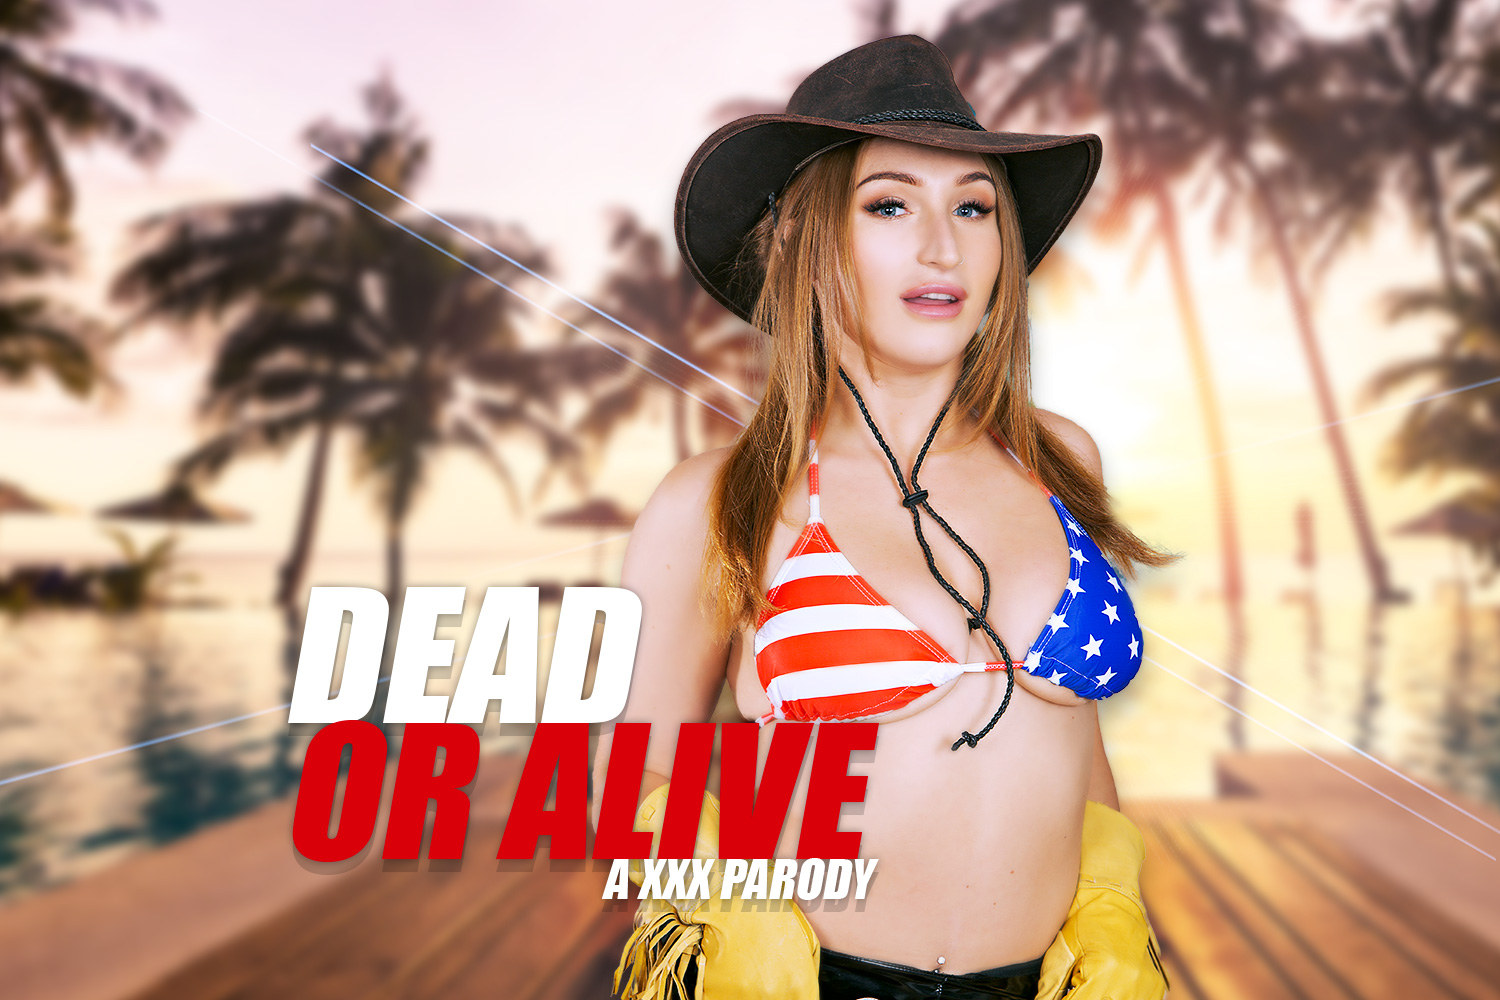 Dead Or Alive A XXX Parody VR Porn Video